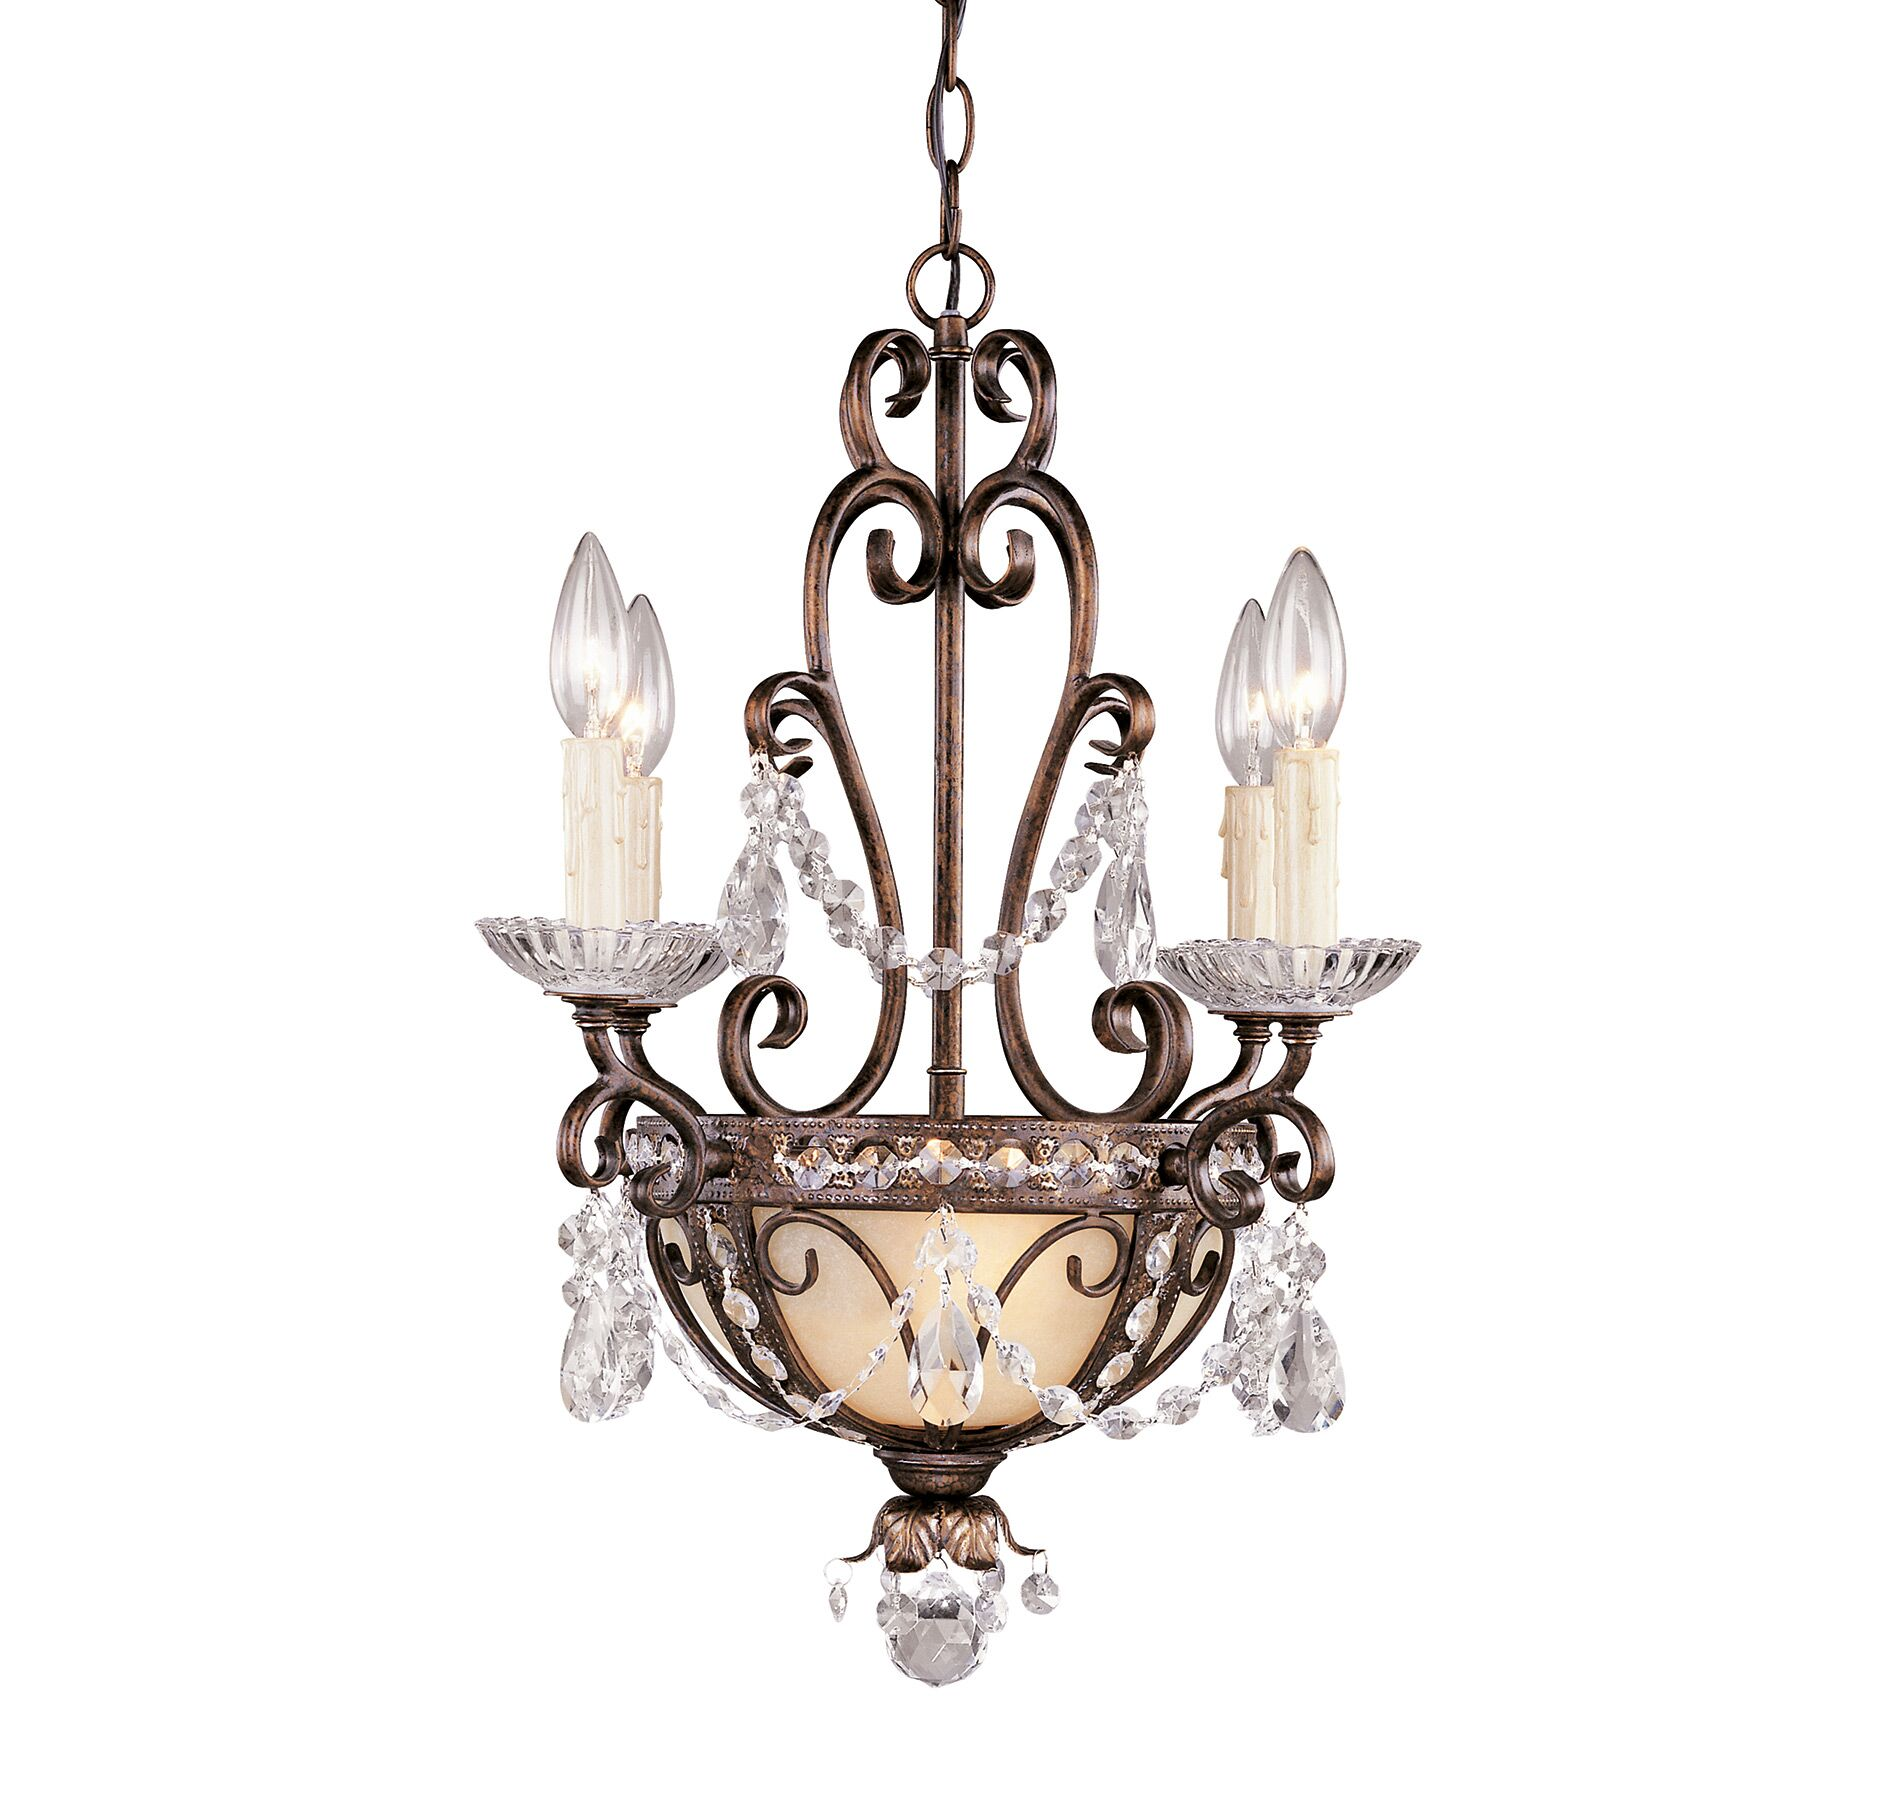 Heid 6-Light Candle Style Chandelier